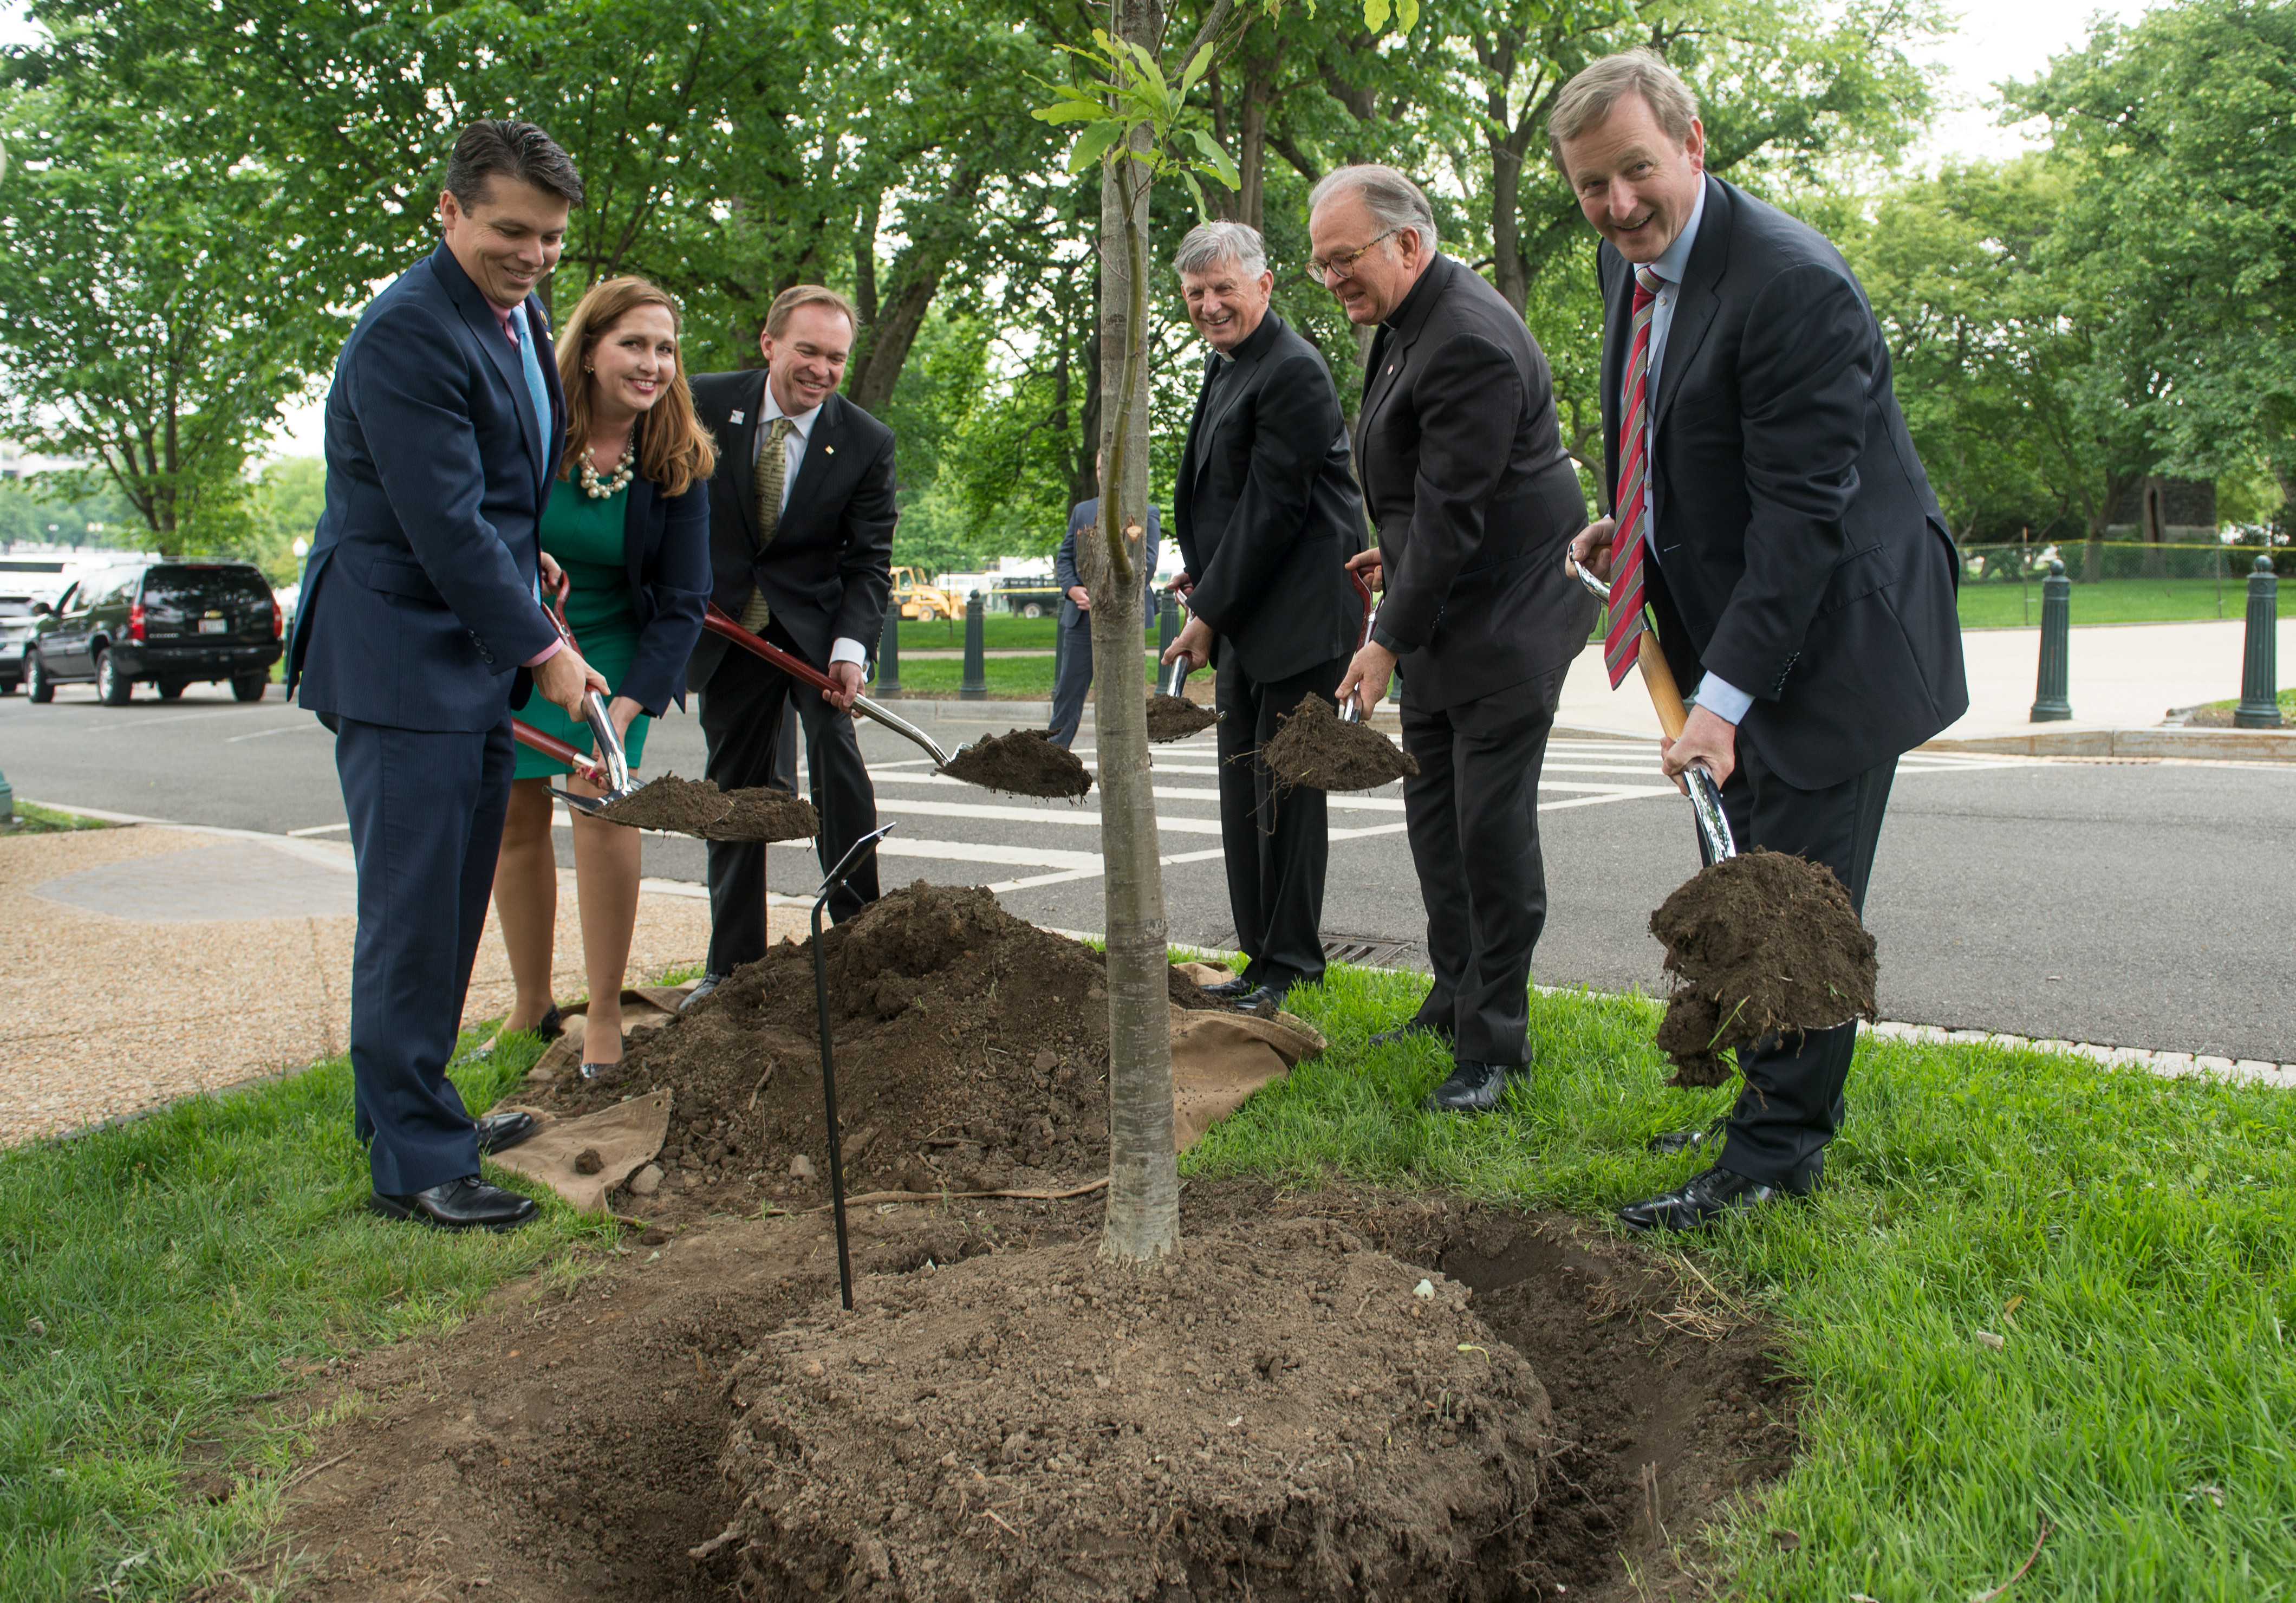 TREE PLANTING TO HONOR IRELAND ON THE CAPITOL GROUNDS FOR THE 100TH ANNIVERSARY OF THE EASTER RISING.